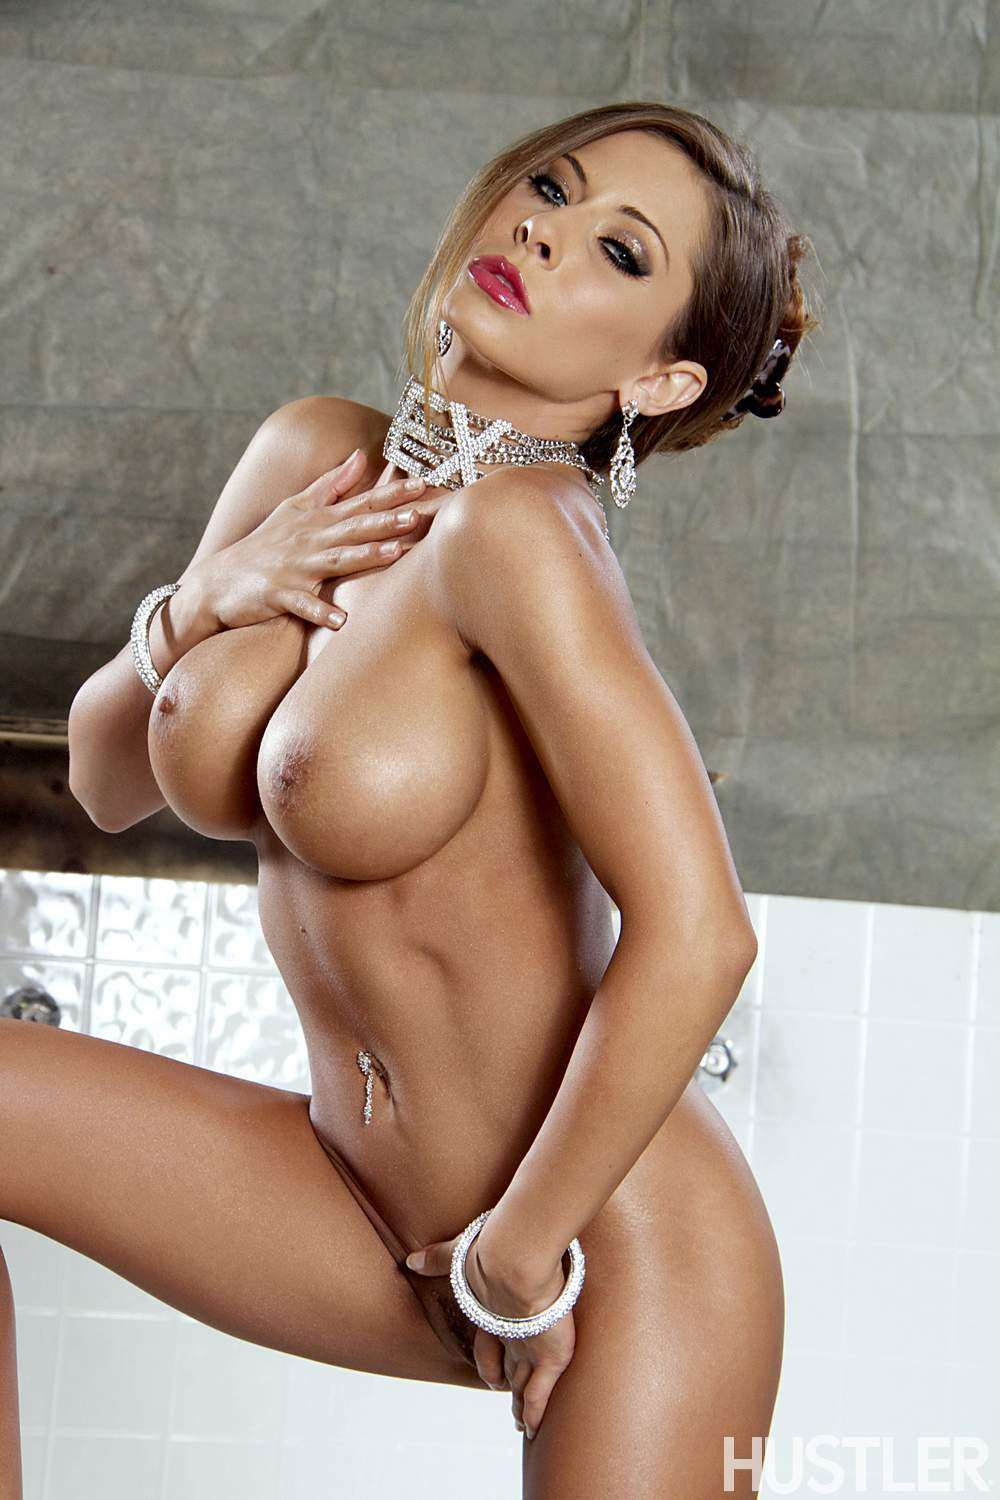 Share best of madison ivy porn pics